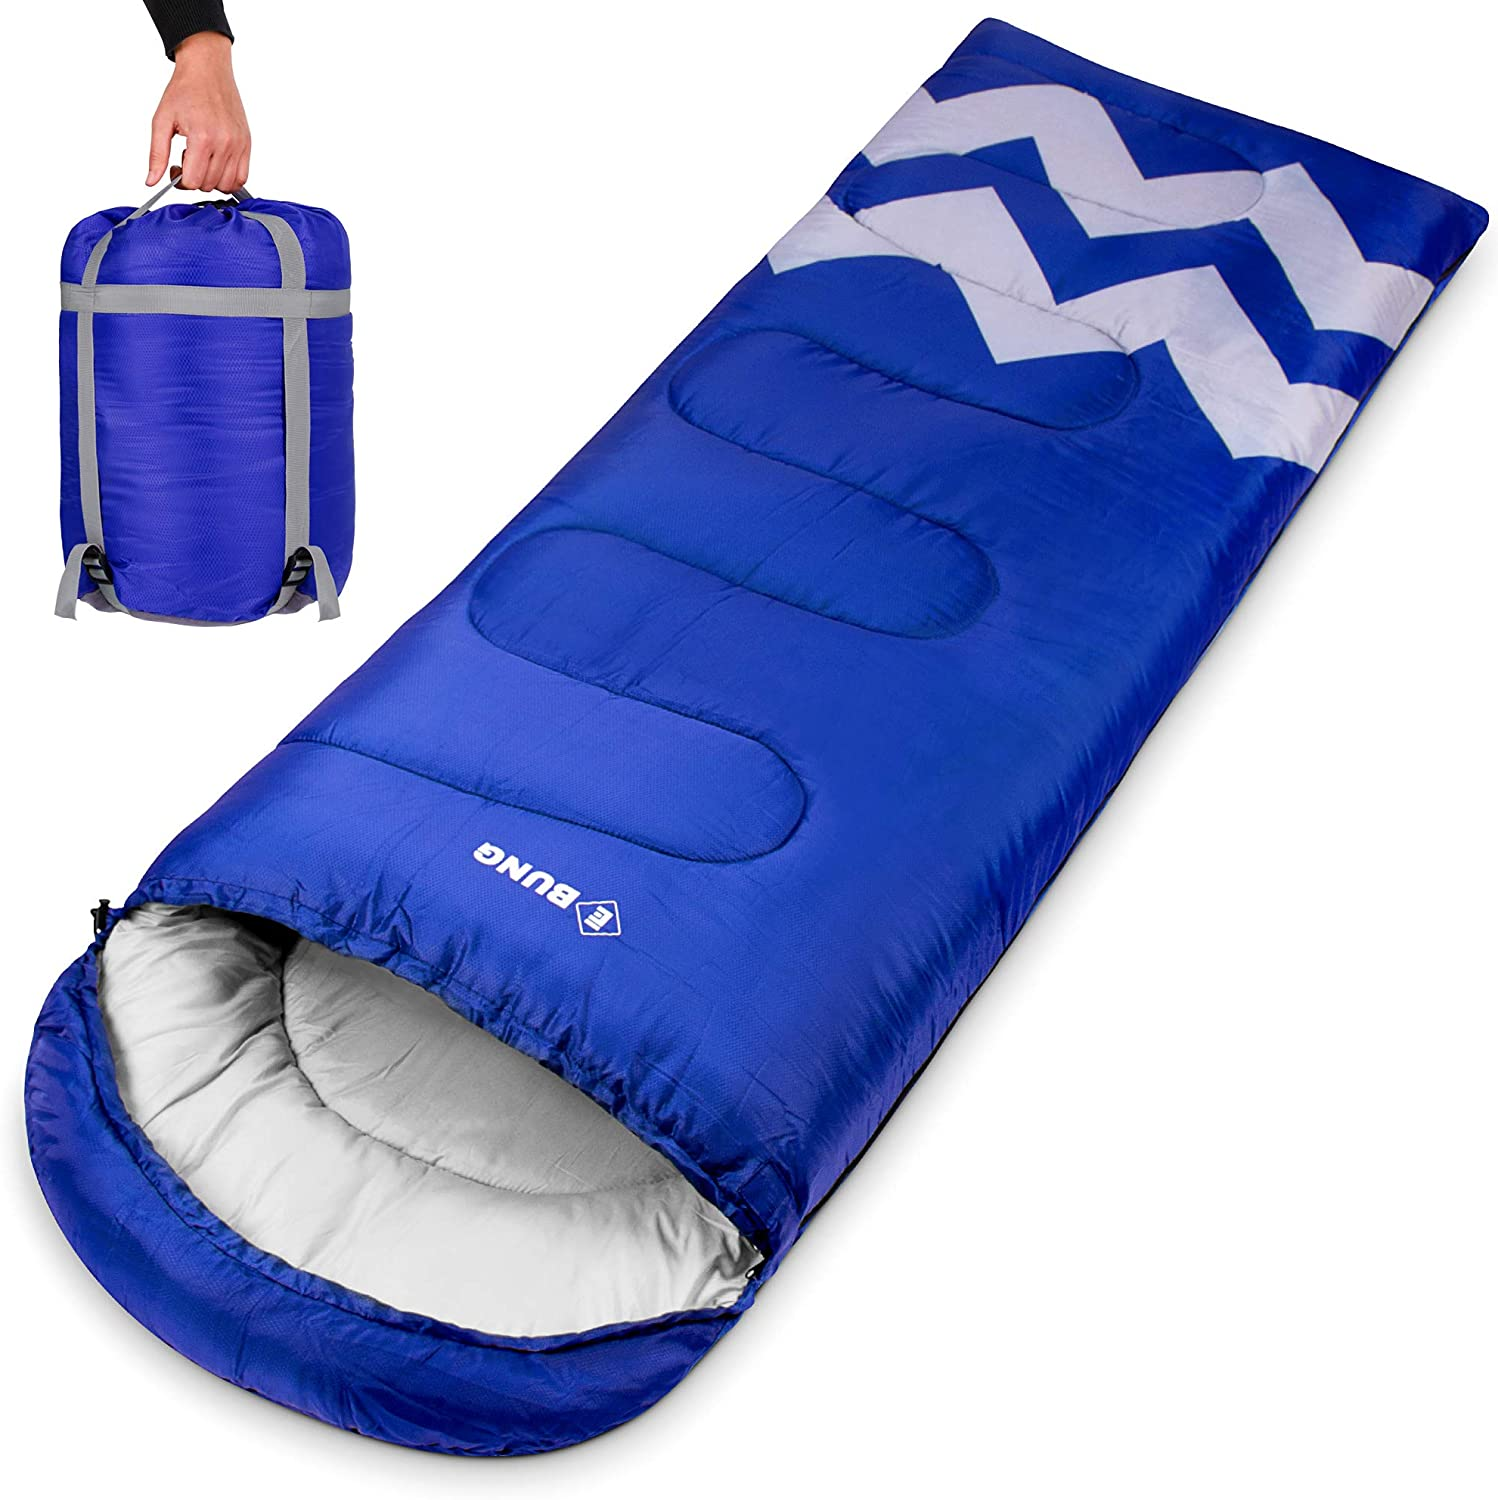 Ebung Sleeping Bag for Cold Weather – Envelope Portable Ideal for Winter, Summer, Spring, Fall – Outdoor Camping, Hiking, Traveling-Adults,Kids,Boys,Girls-Lightweight Waterproof Washable Blue